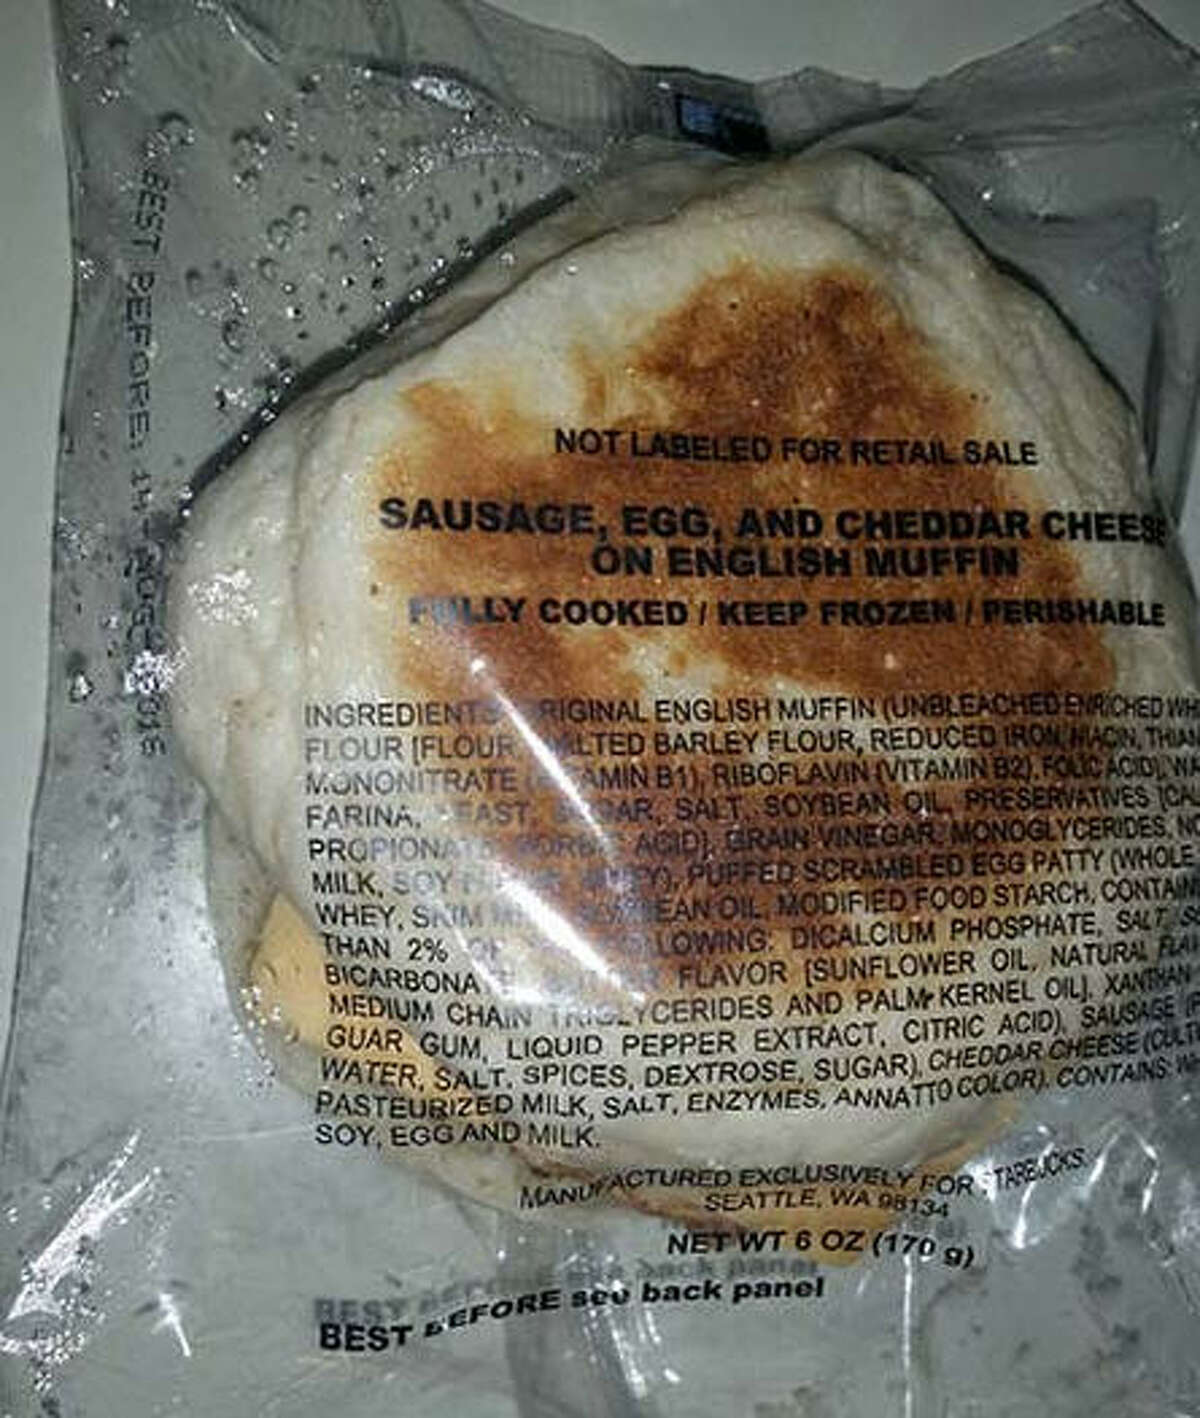 Breakfast sandwiches sold at Starbucks are being recalled. Click the gallery to see Starbucks hacks and secret menus.